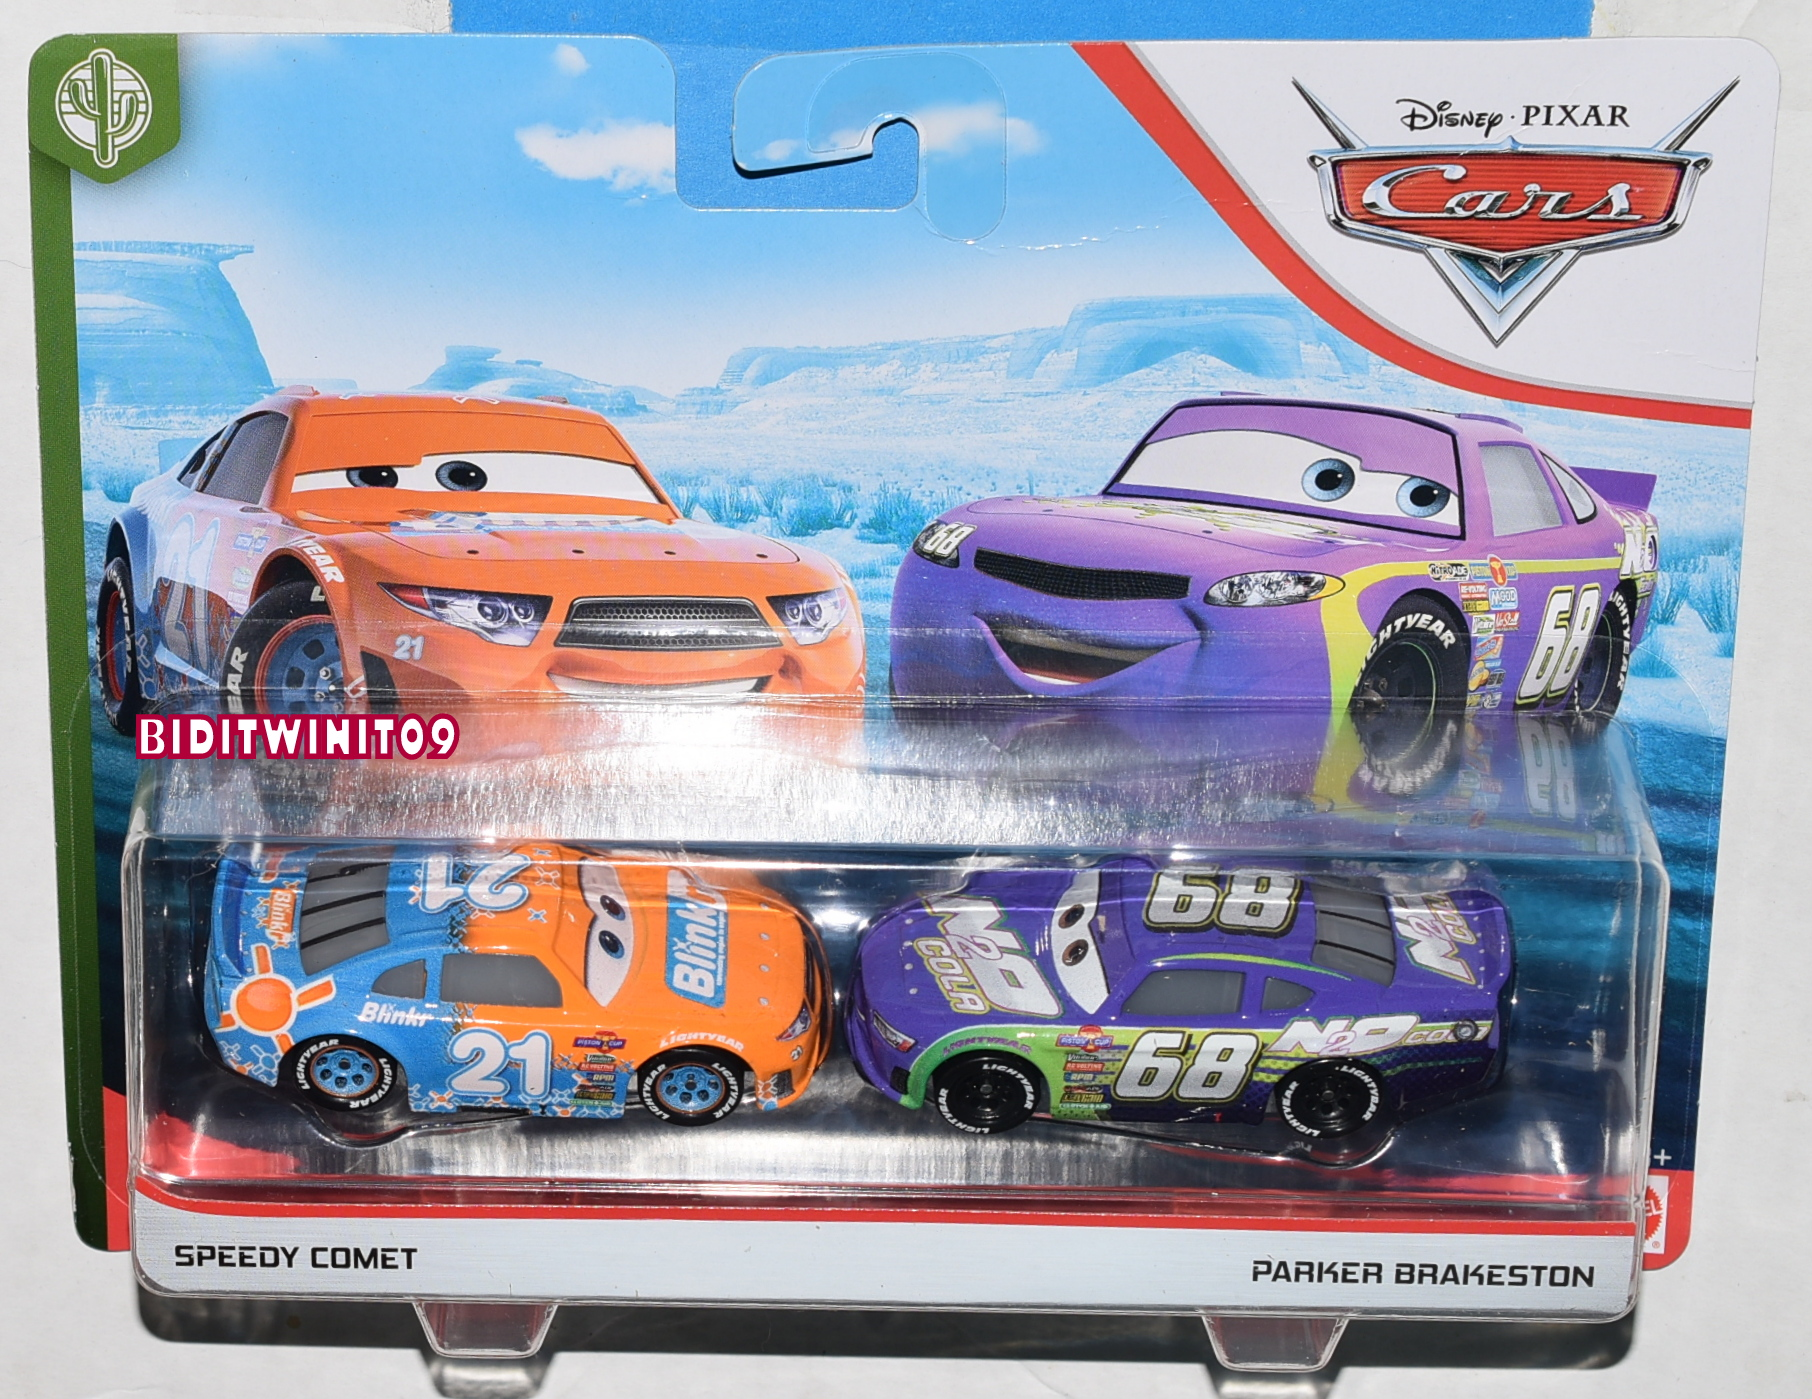 DISNEY PIXAR CARS SPEEDY COMET - PARKER BRAKESTON 2 CAR PACK CASE T E+